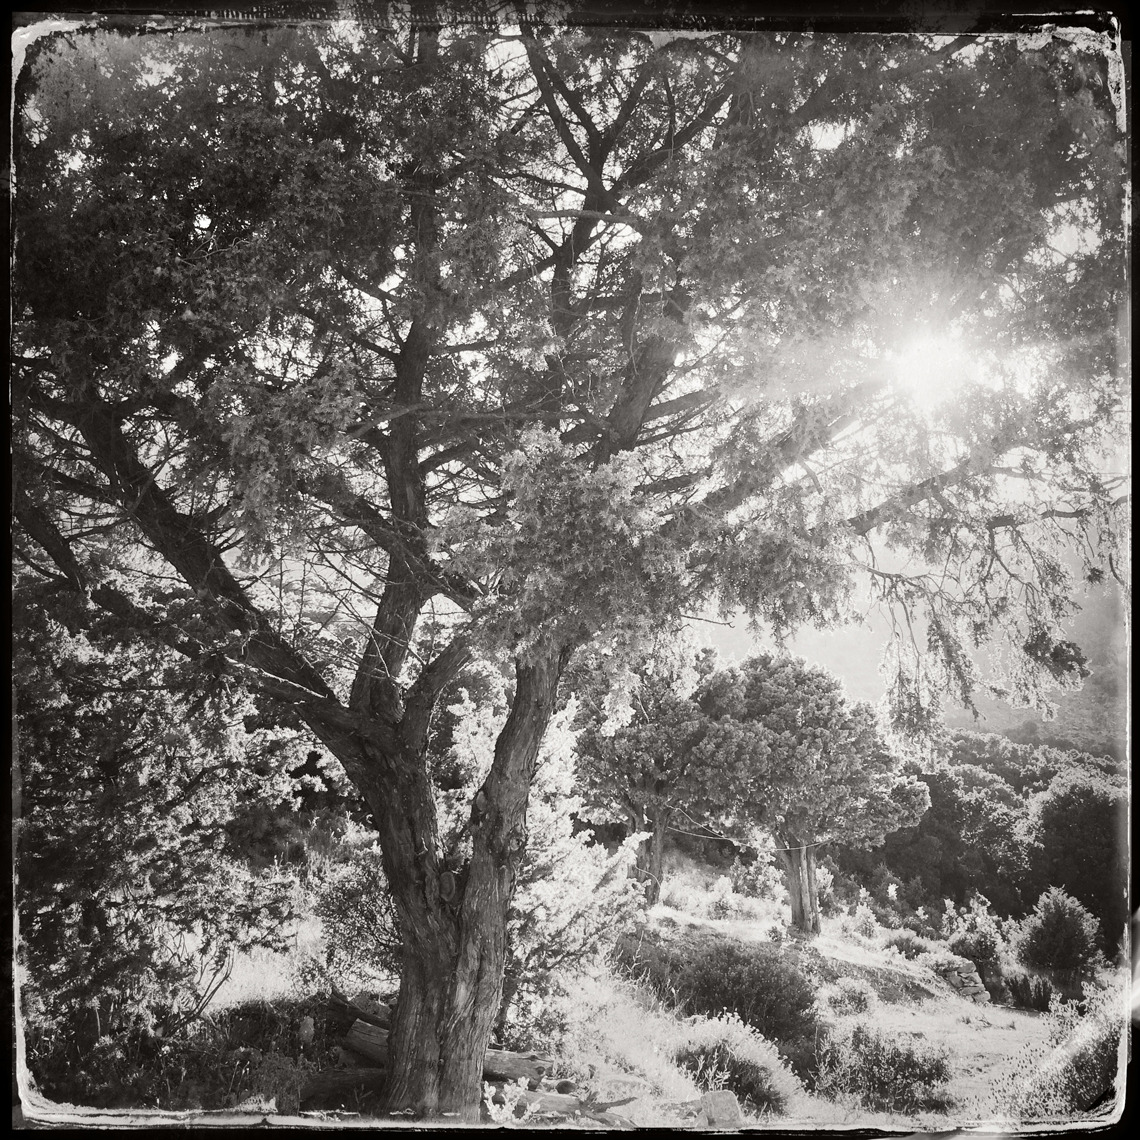 Jon Wyatt Photography - Sanctuary - Part II woodland paths in Cornwall & Devon